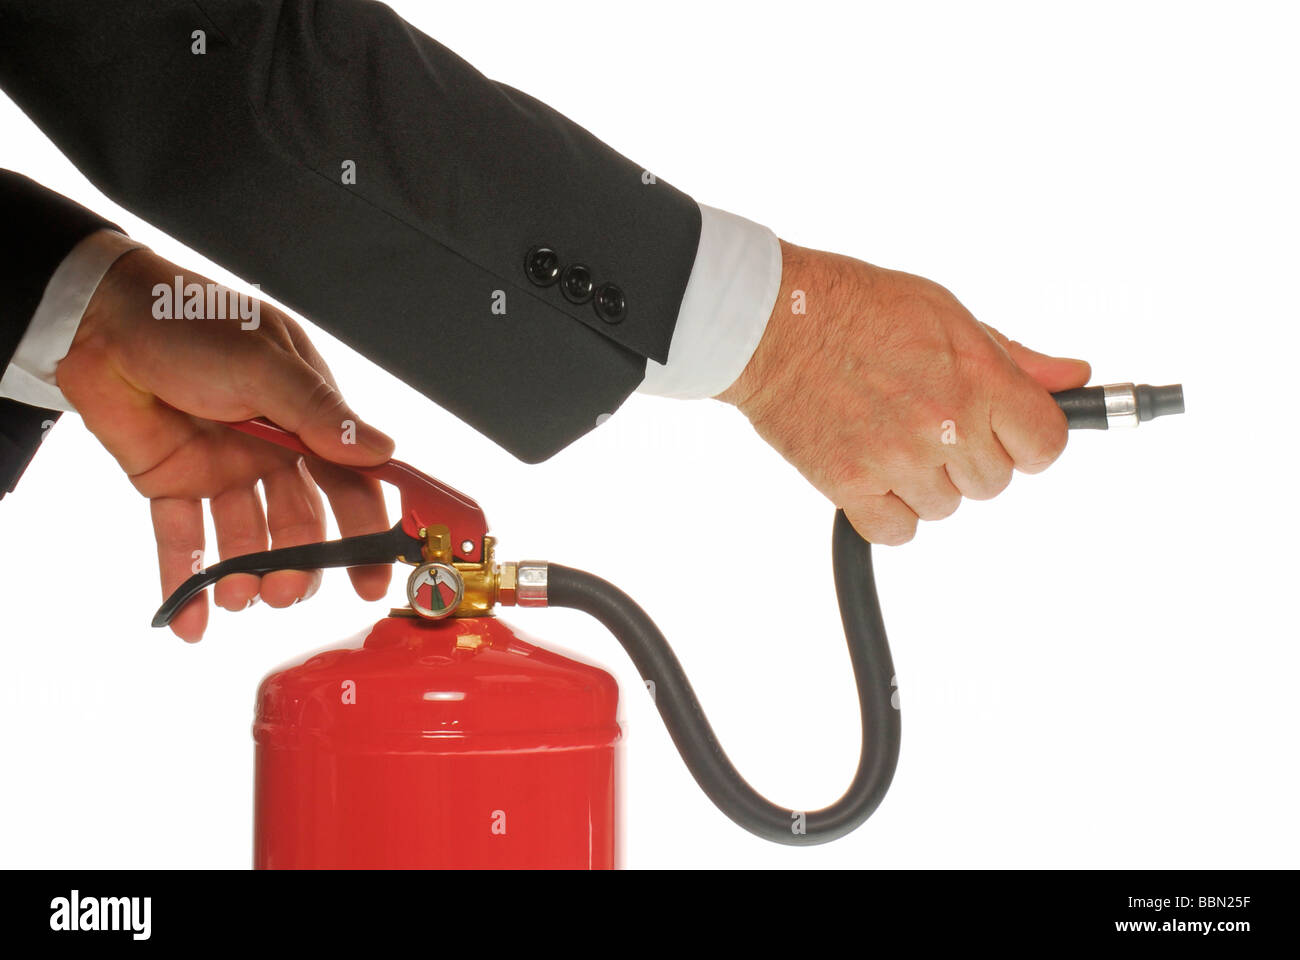 Manager's hand holding a fire extinguisher, symbolic image - Stock Image